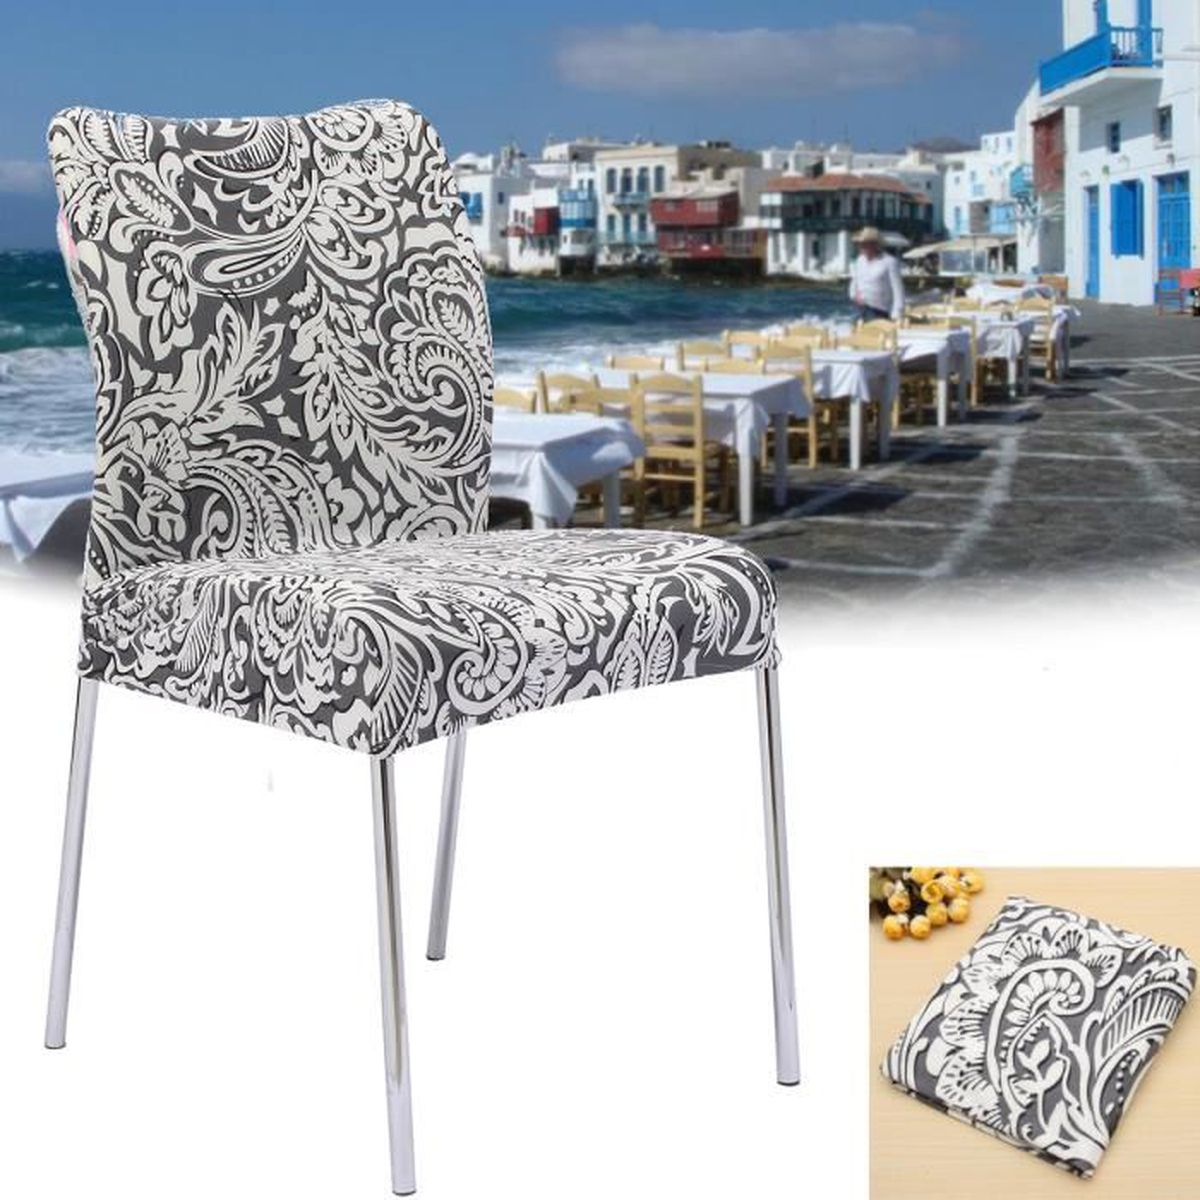 elastique couverture couvre housse de chaise d coration h tel restaurant salon type 3 achat. Black Bedroom Furniture Sets. Home Design Ideas